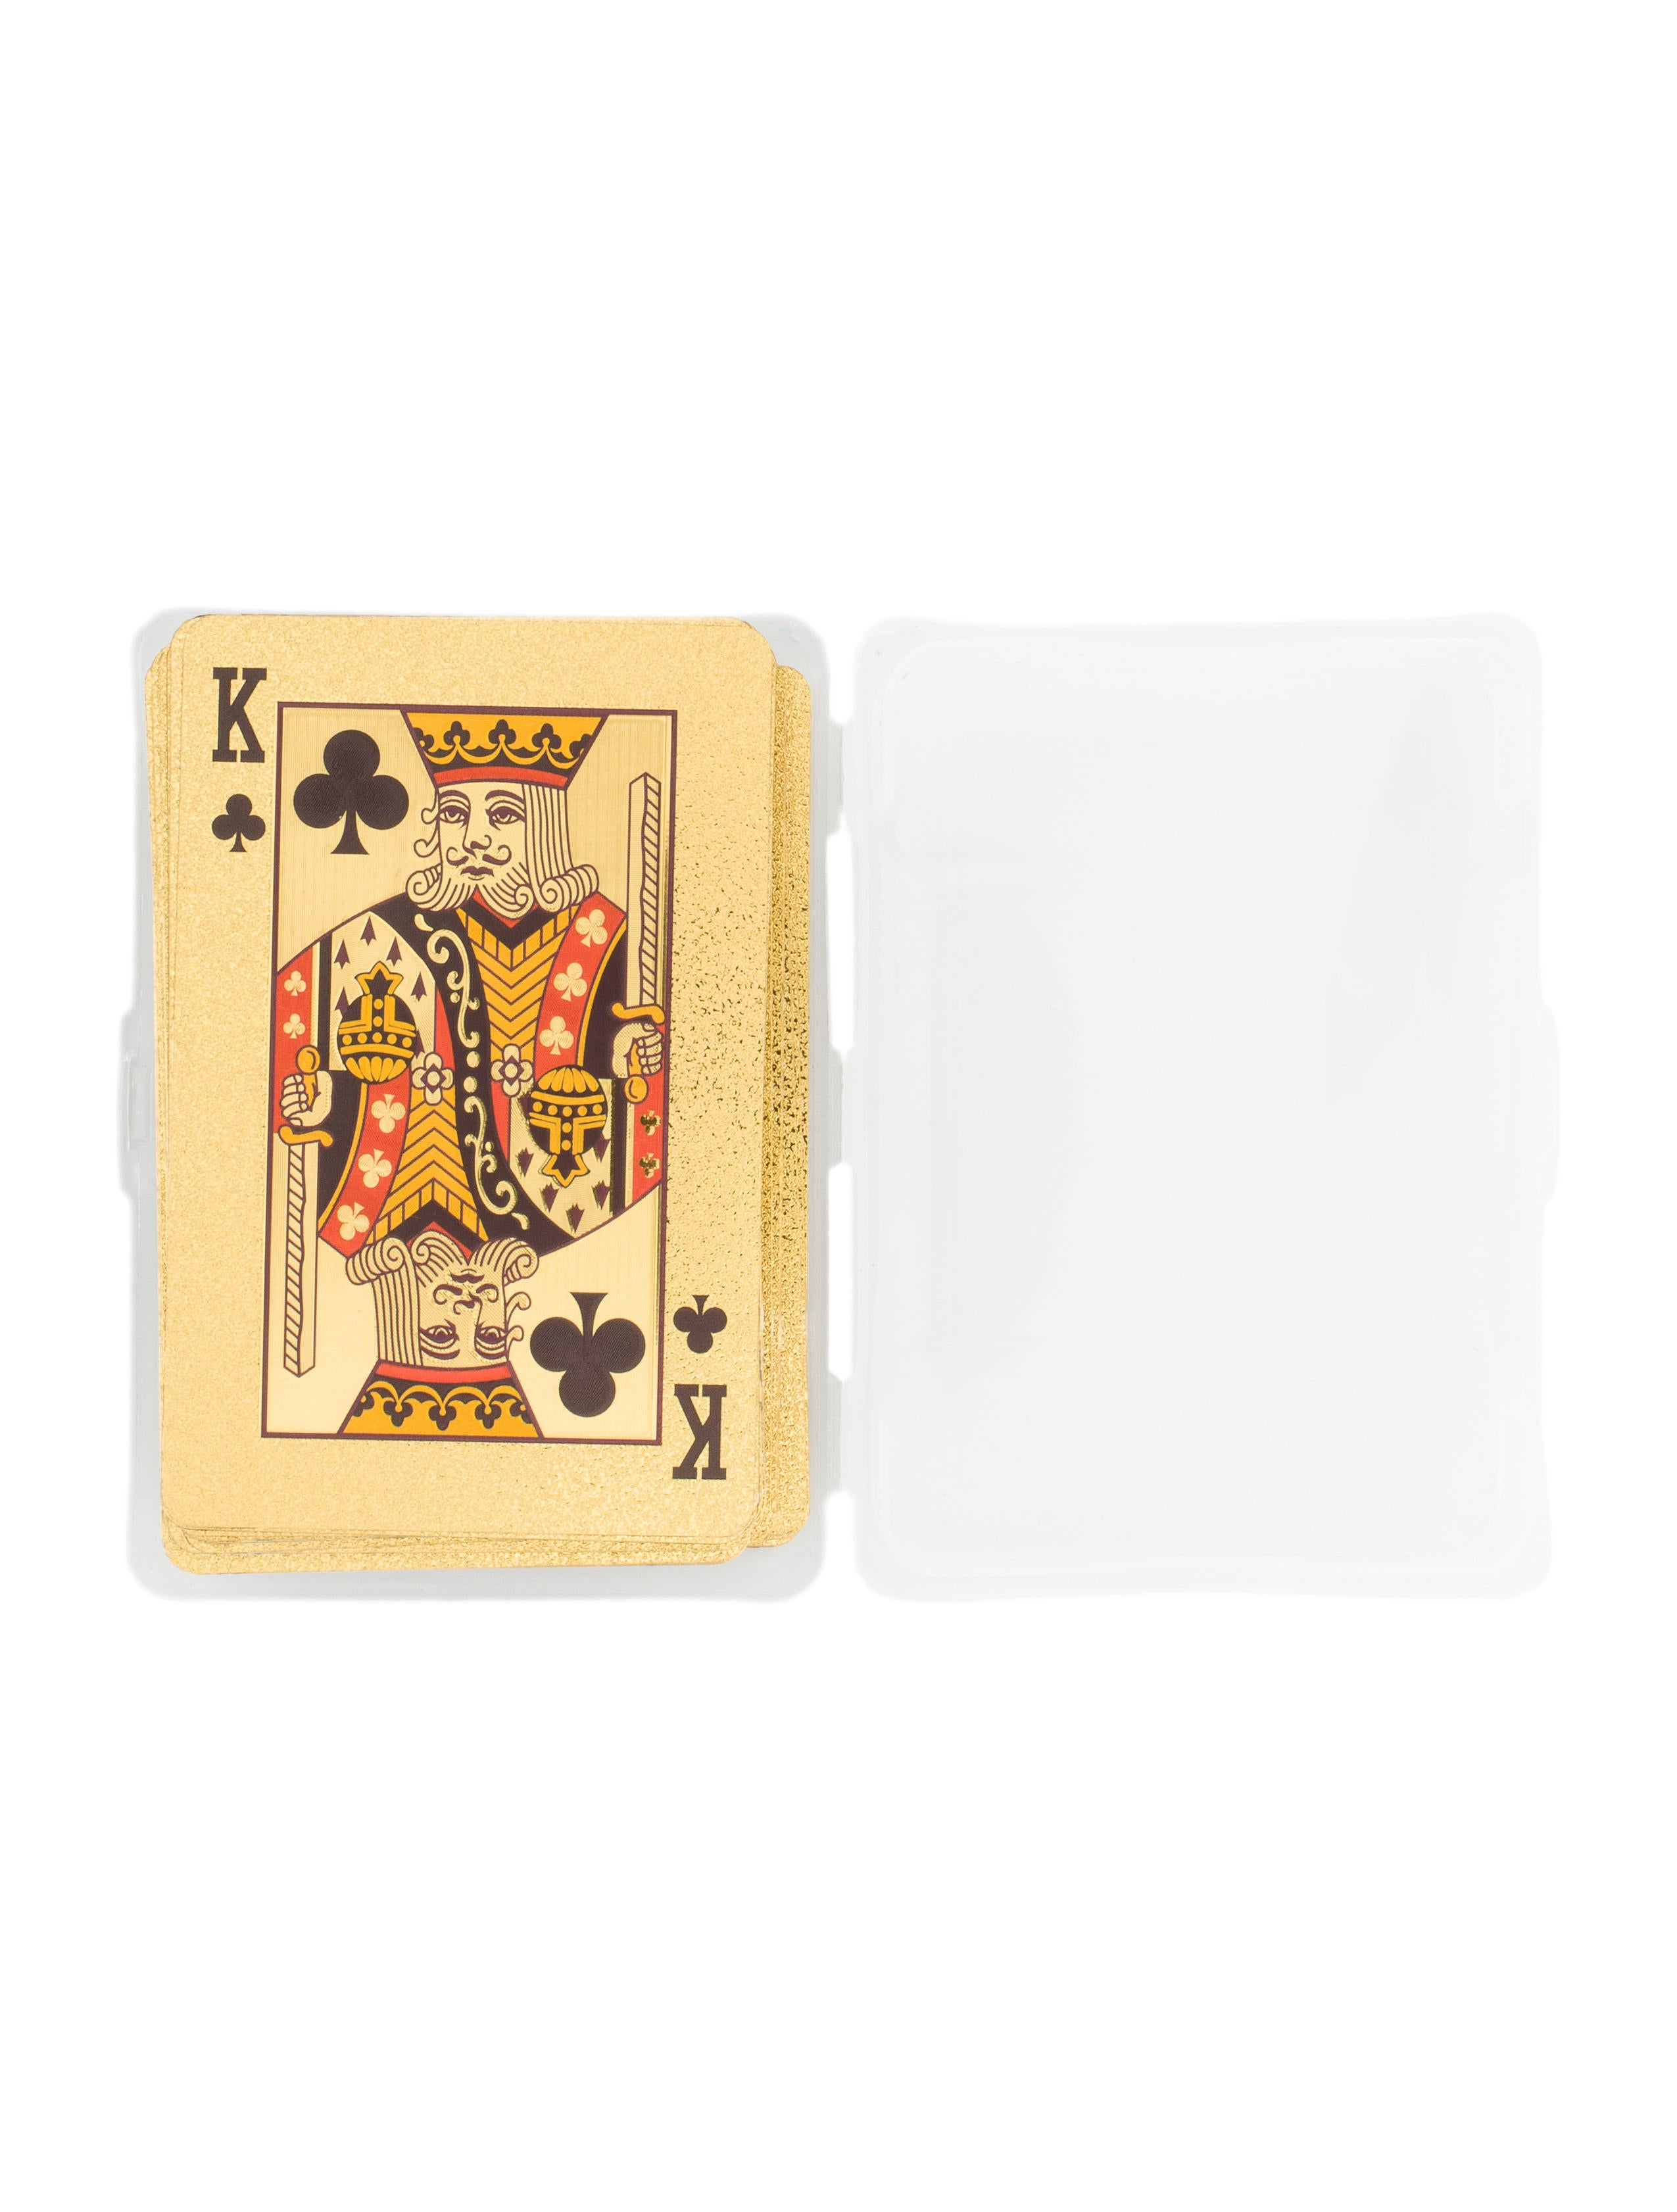 Supreme Box Logo Playing Card Deck Decor And Accessories